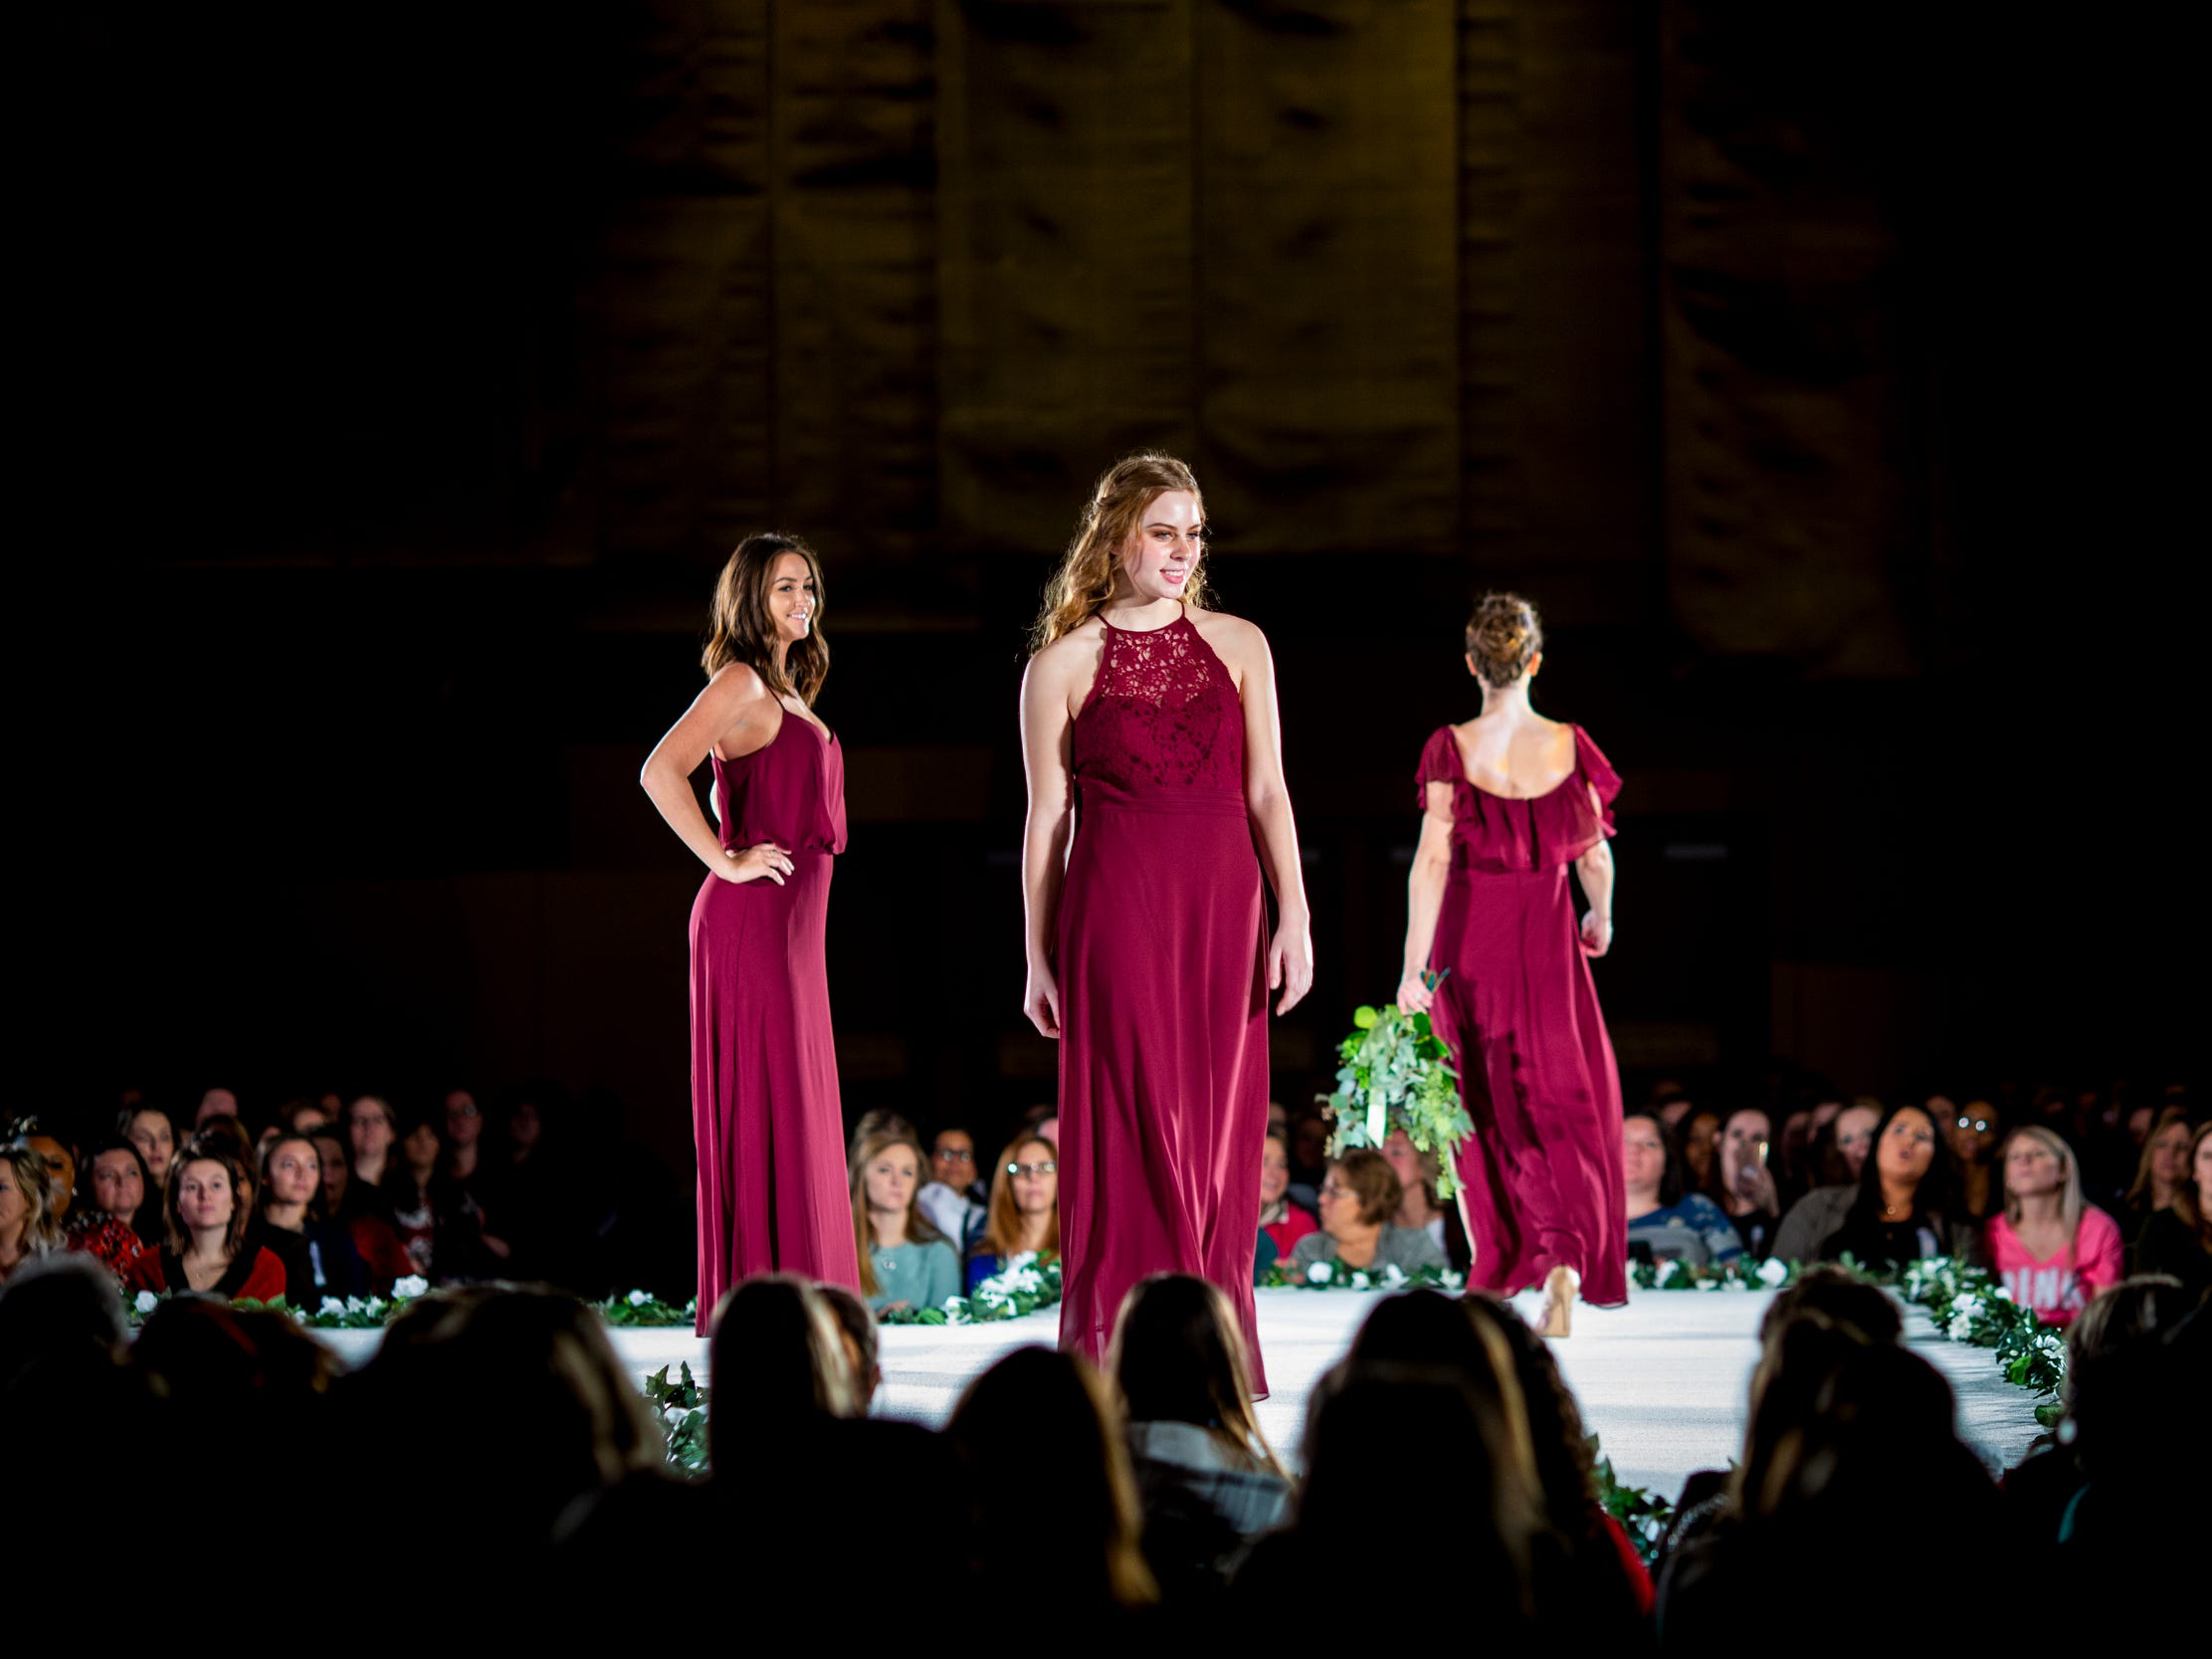 Models walk down the runway in bridesmaid dresses for the fashion show at the Wendy's Bridal Show at the Duke Energy Convention Center Saturday, January 5, 2019 in Downtown Cincinnati.